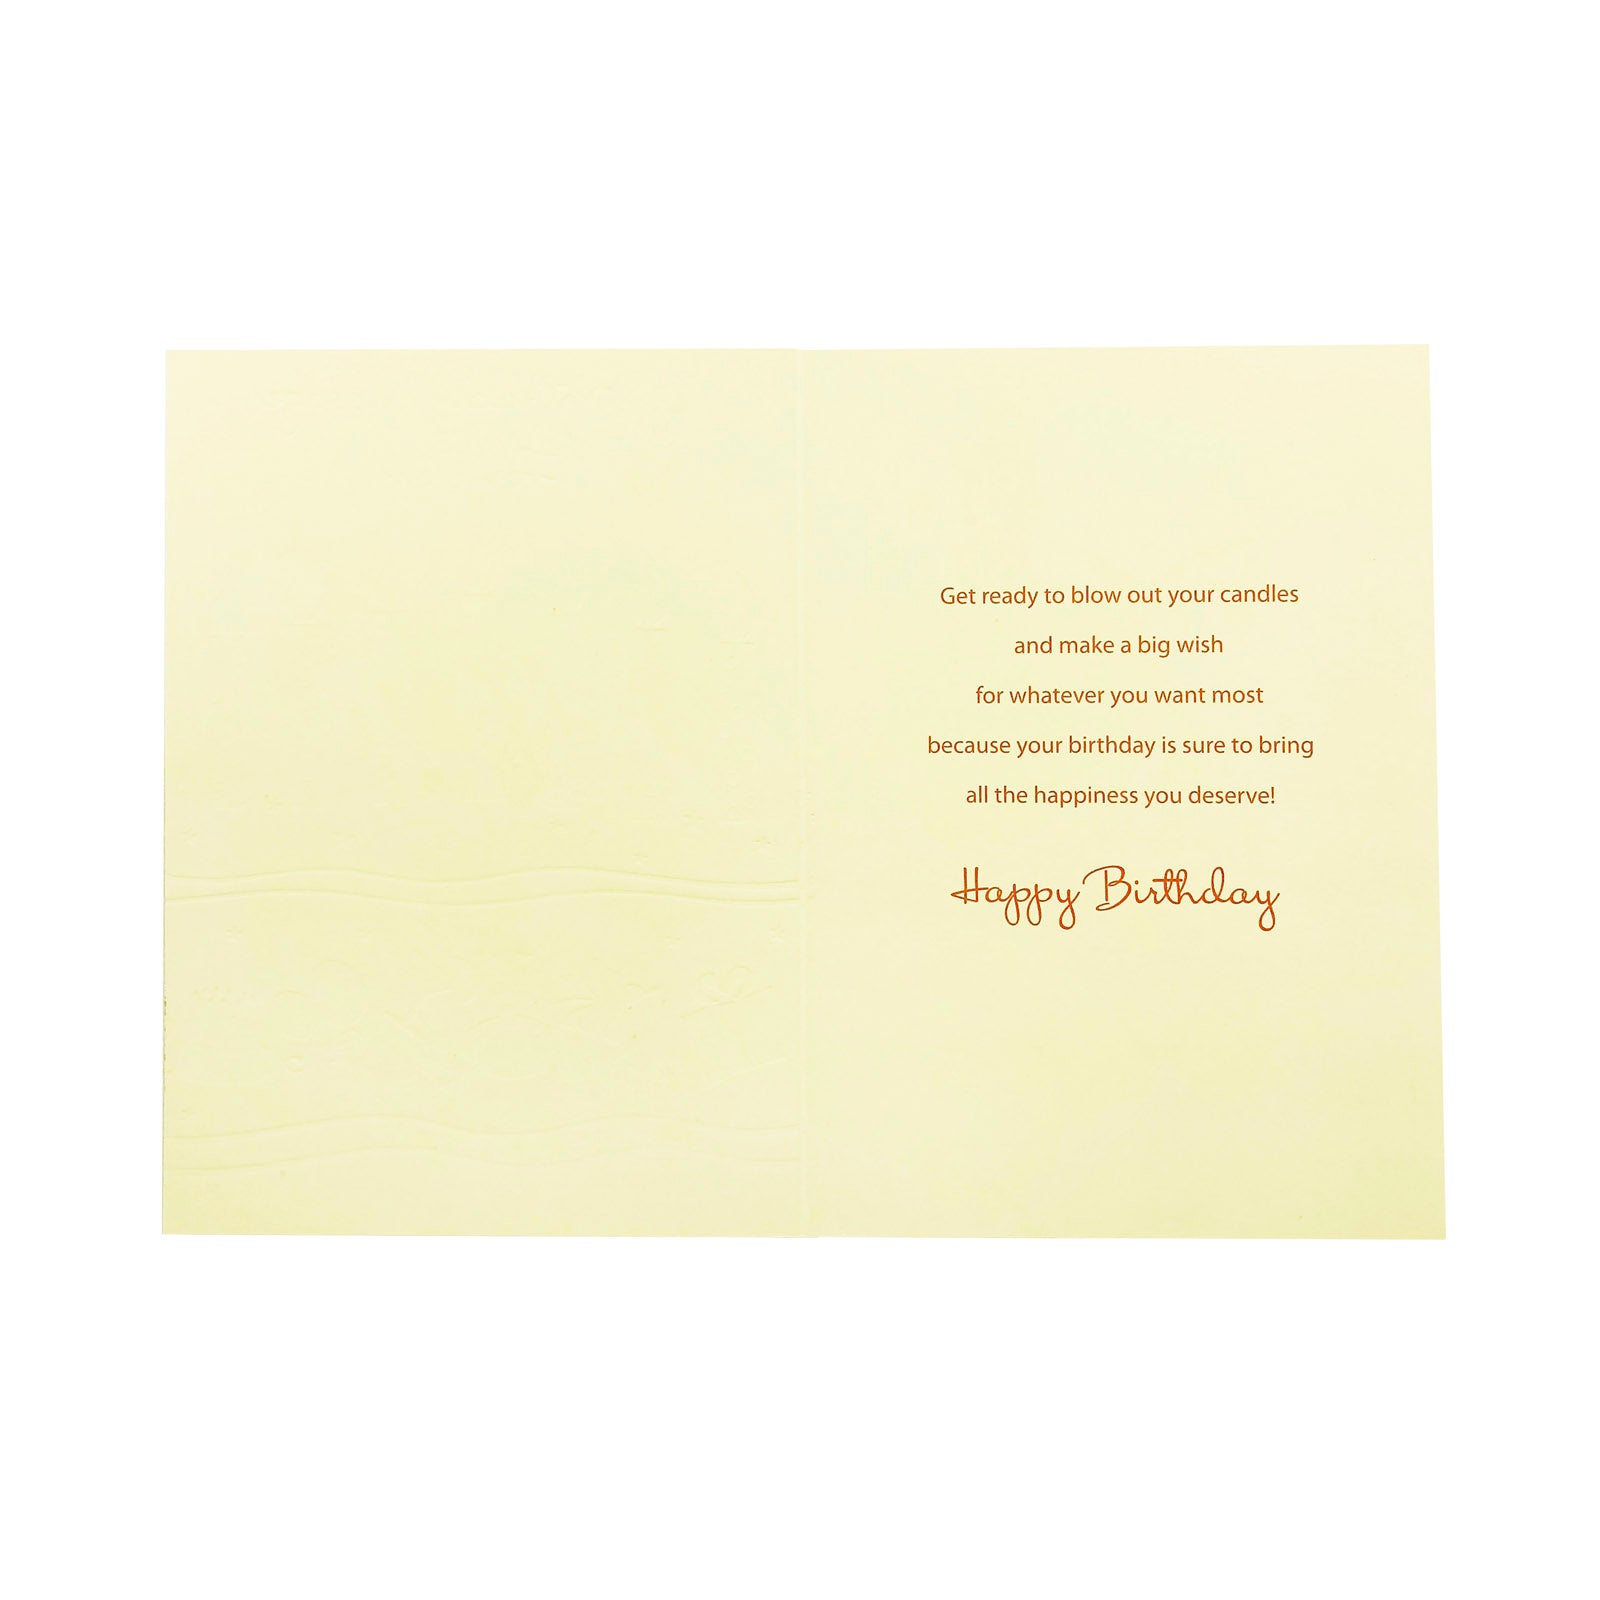 Designer Greetings Birthday Card - A Birthday Message For You - Candles